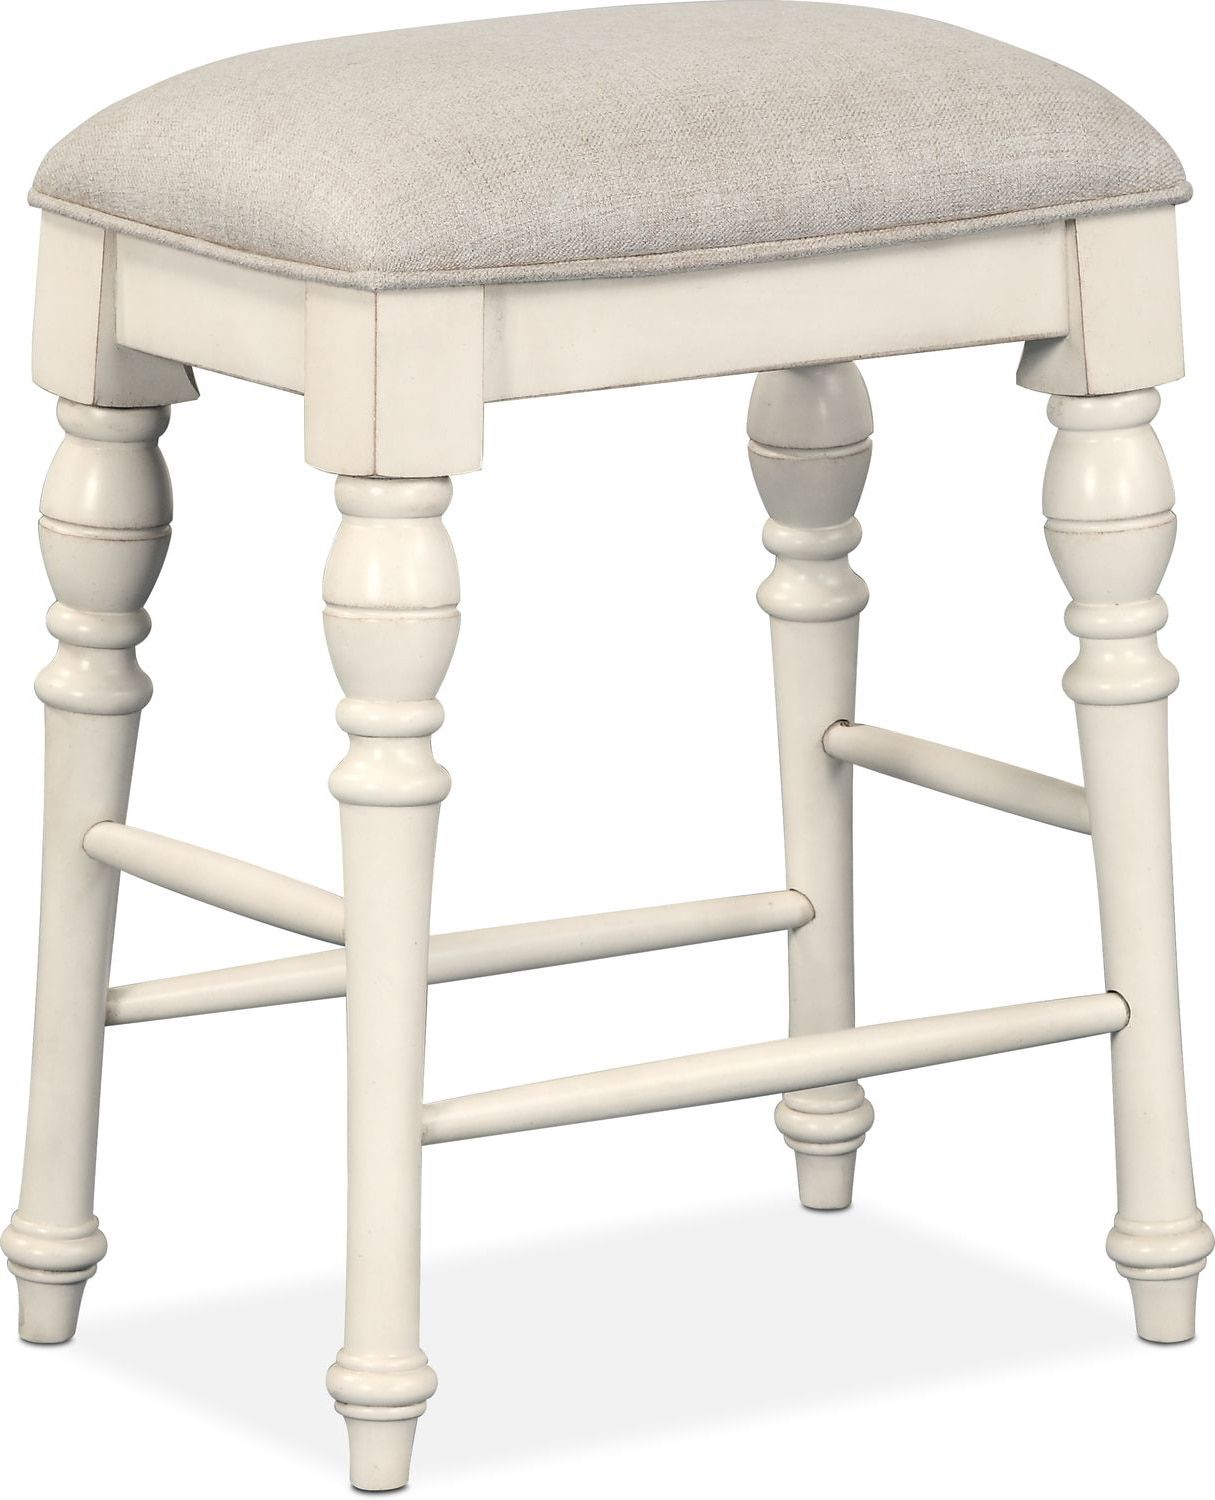 Charleston Counter Height Backless Stool White Upholstered Bar Stools Backless Bar Stools Backless Stools